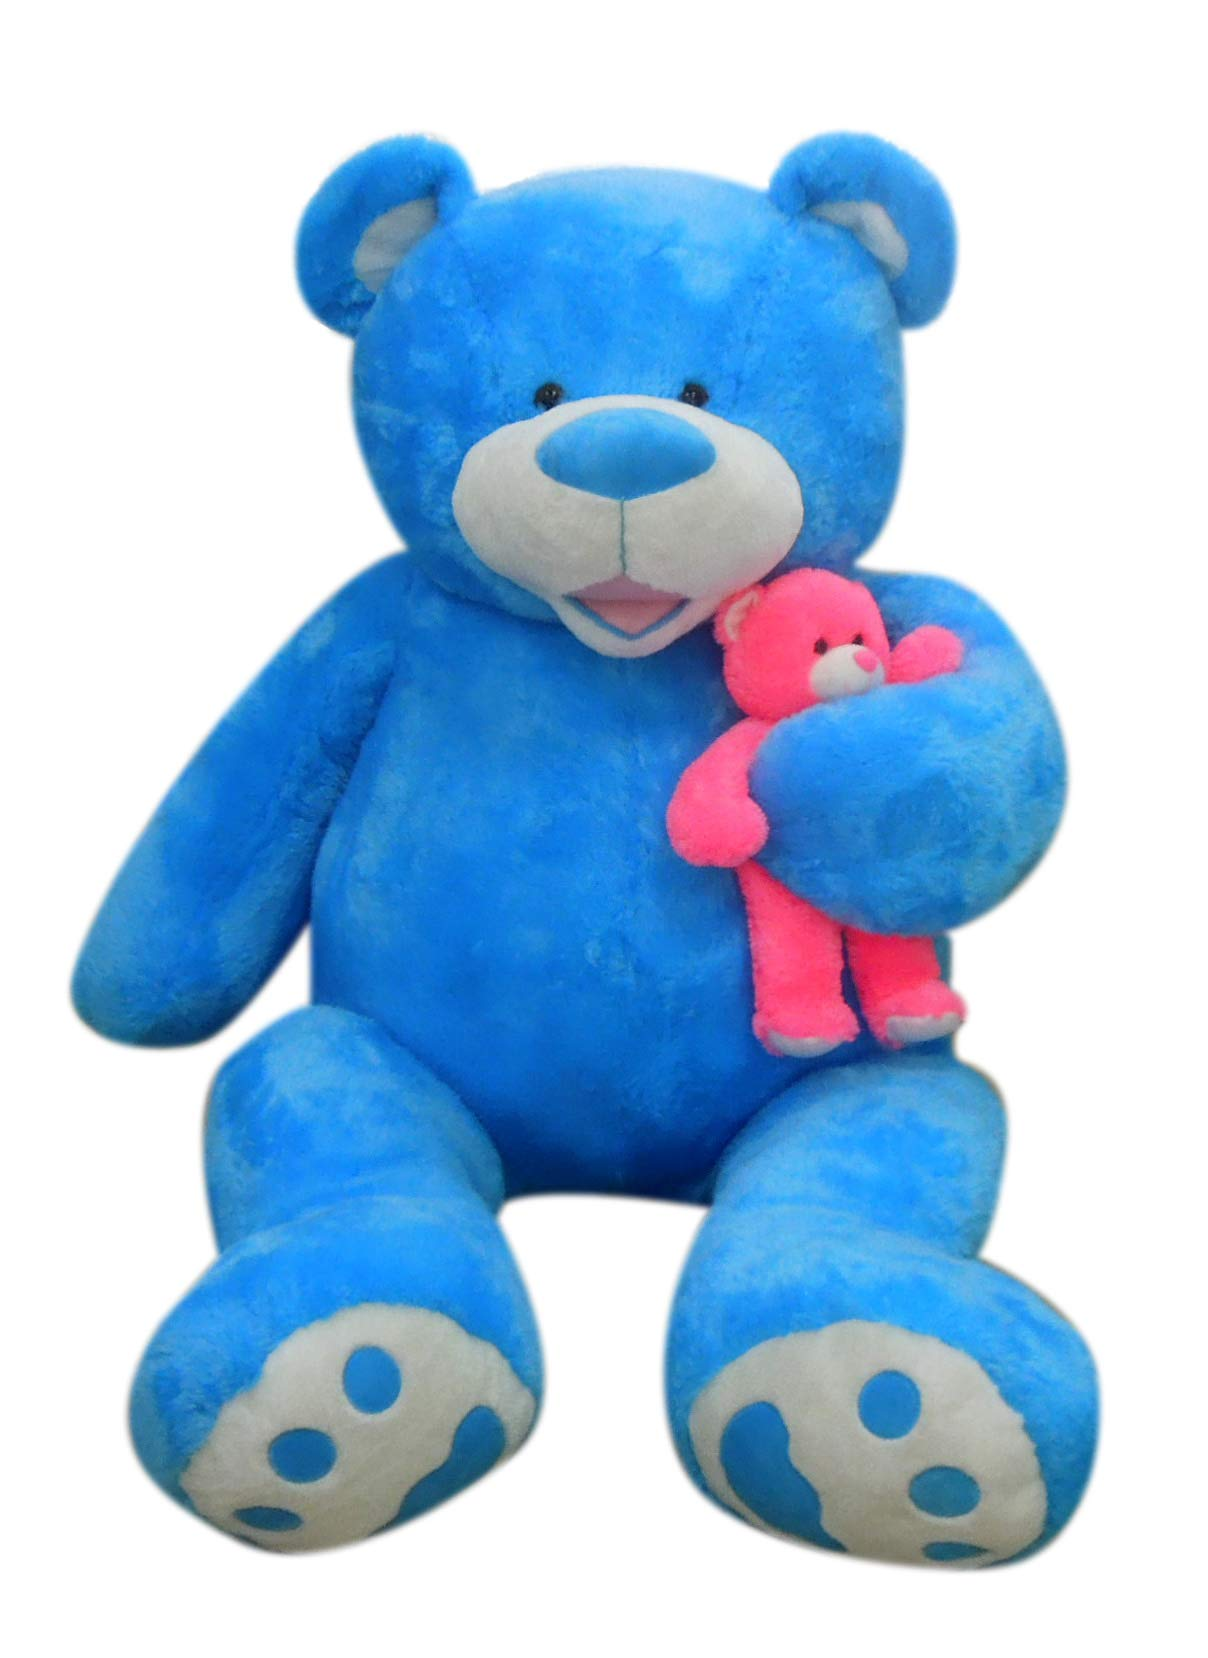 Giant Stuffed 80'' (6.7 Feet) Teddy Bear Unique Gift for a Loved One - Soft and Cuddly (Blue) by Goffa